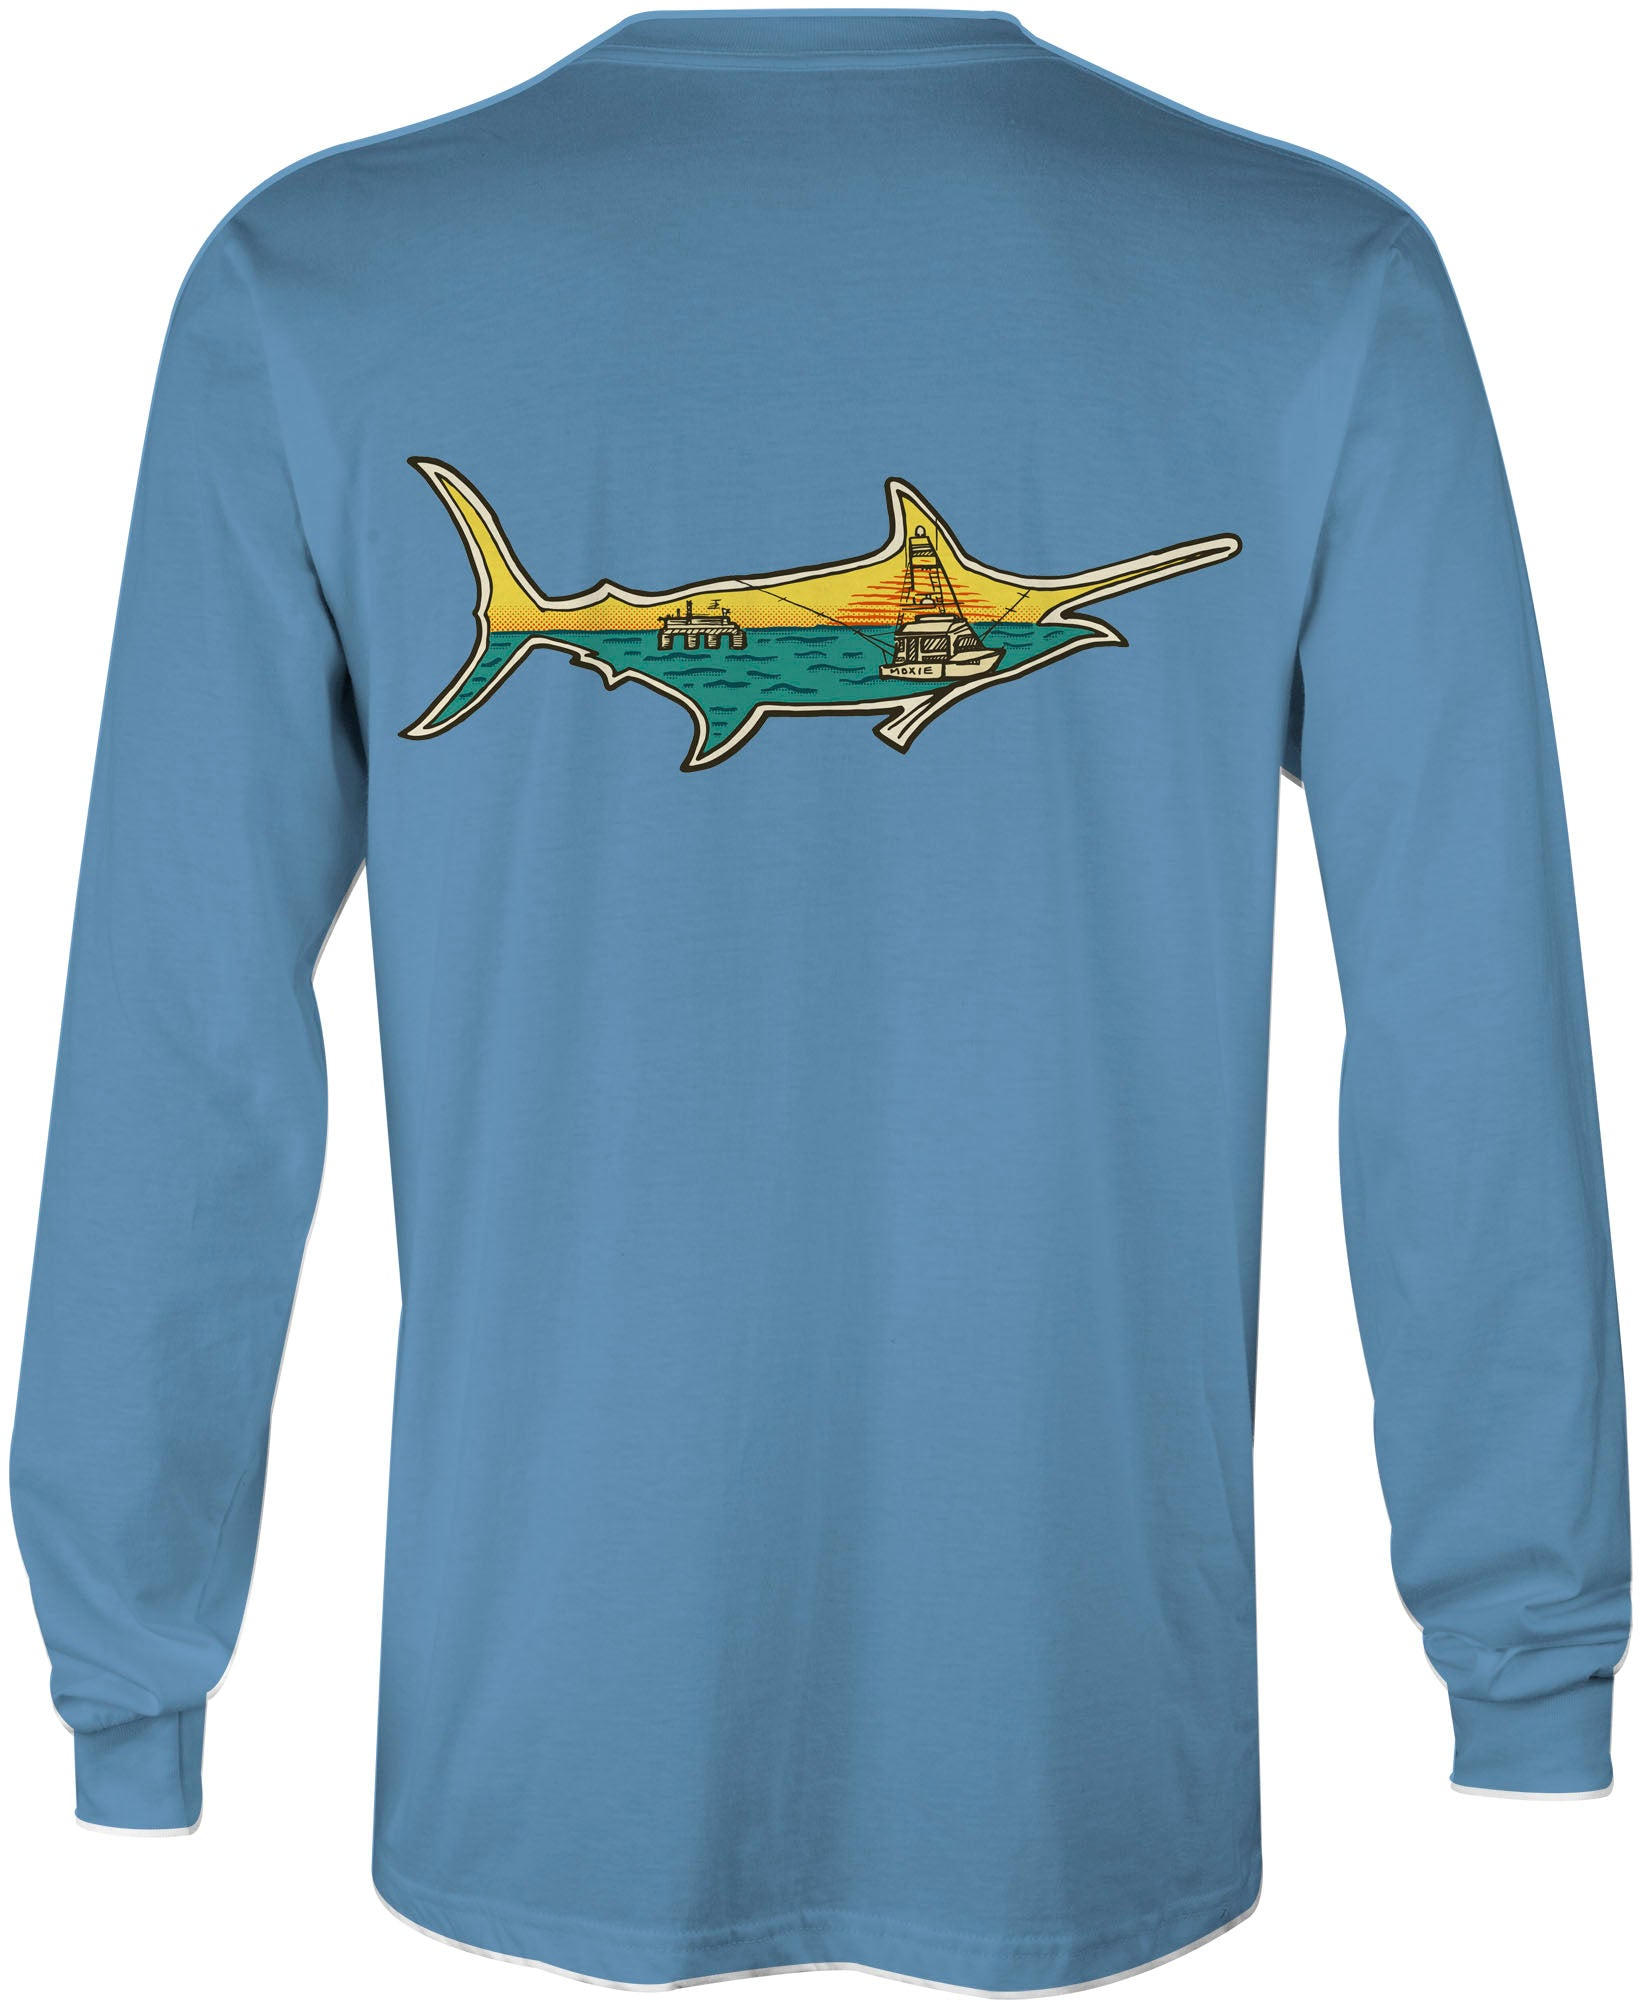 Offshore Marlin Performance Tee